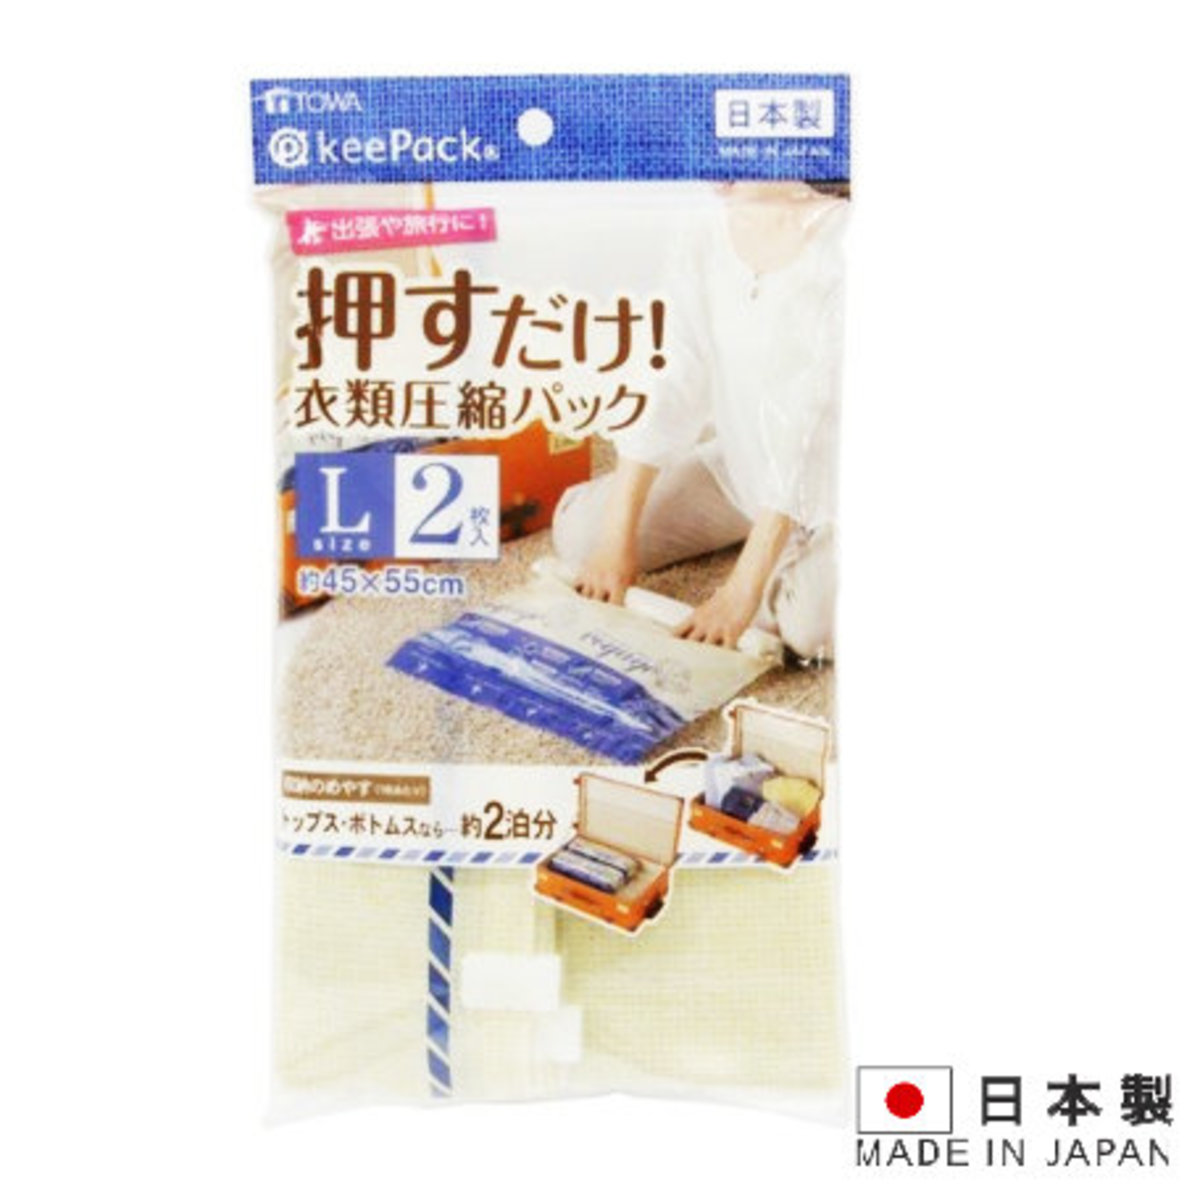 VO Clothes Compression Storage Bags 2 Pieces[Made in Japan]